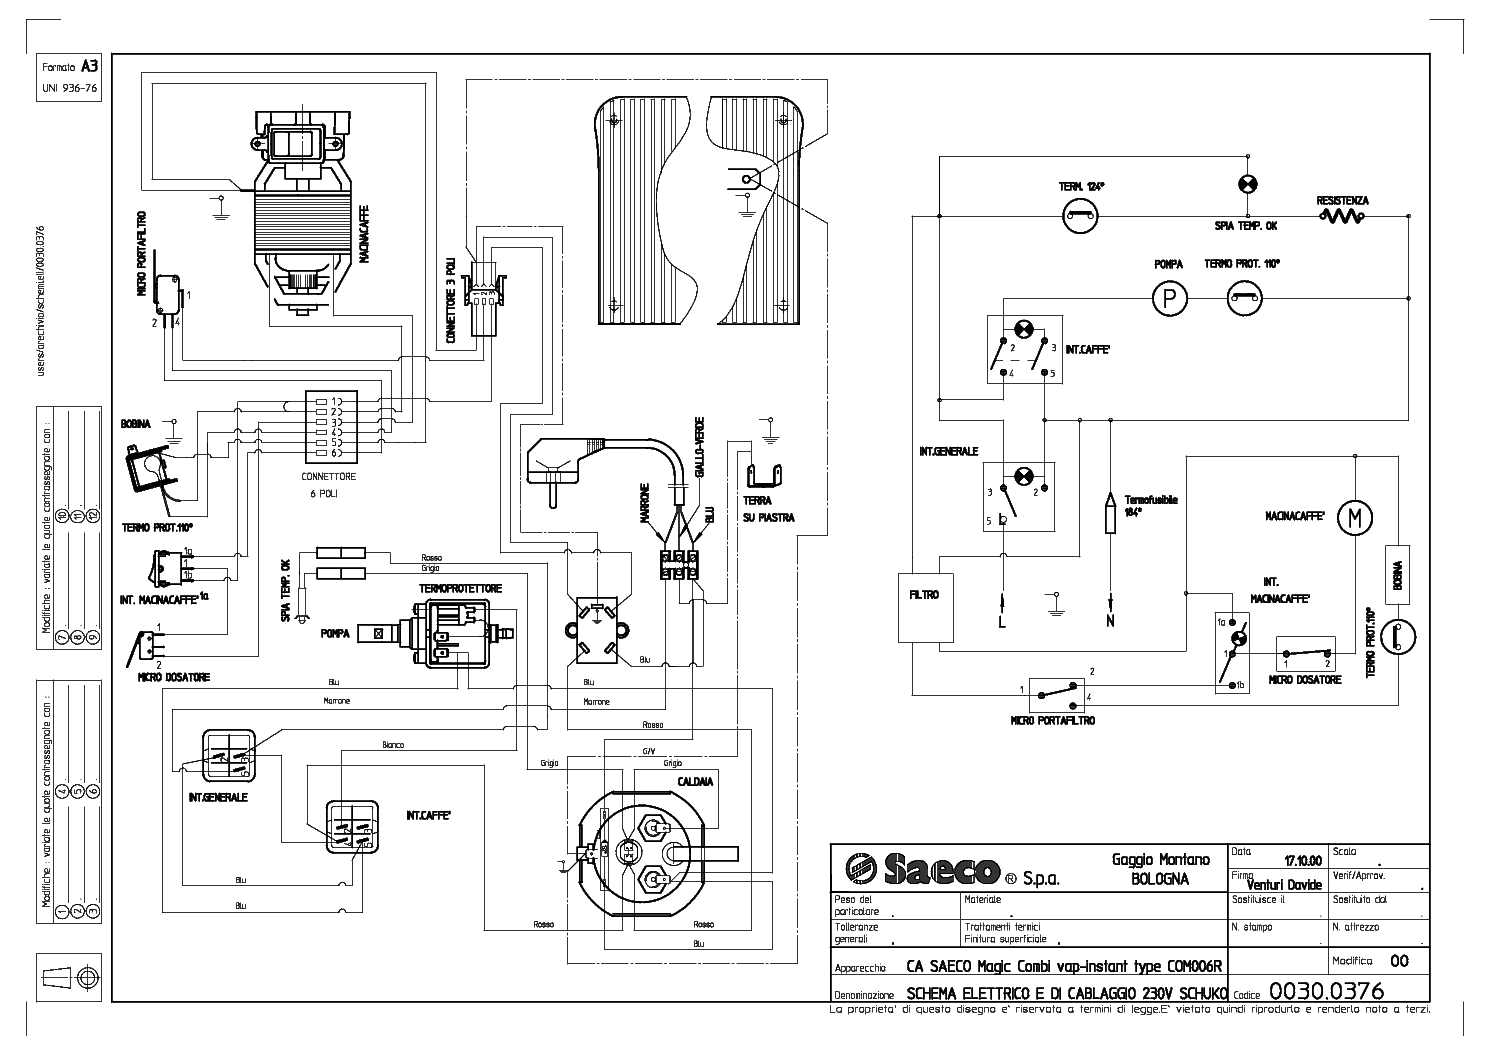 Saeco Via Venezia Combi Wiring Service Manual Download